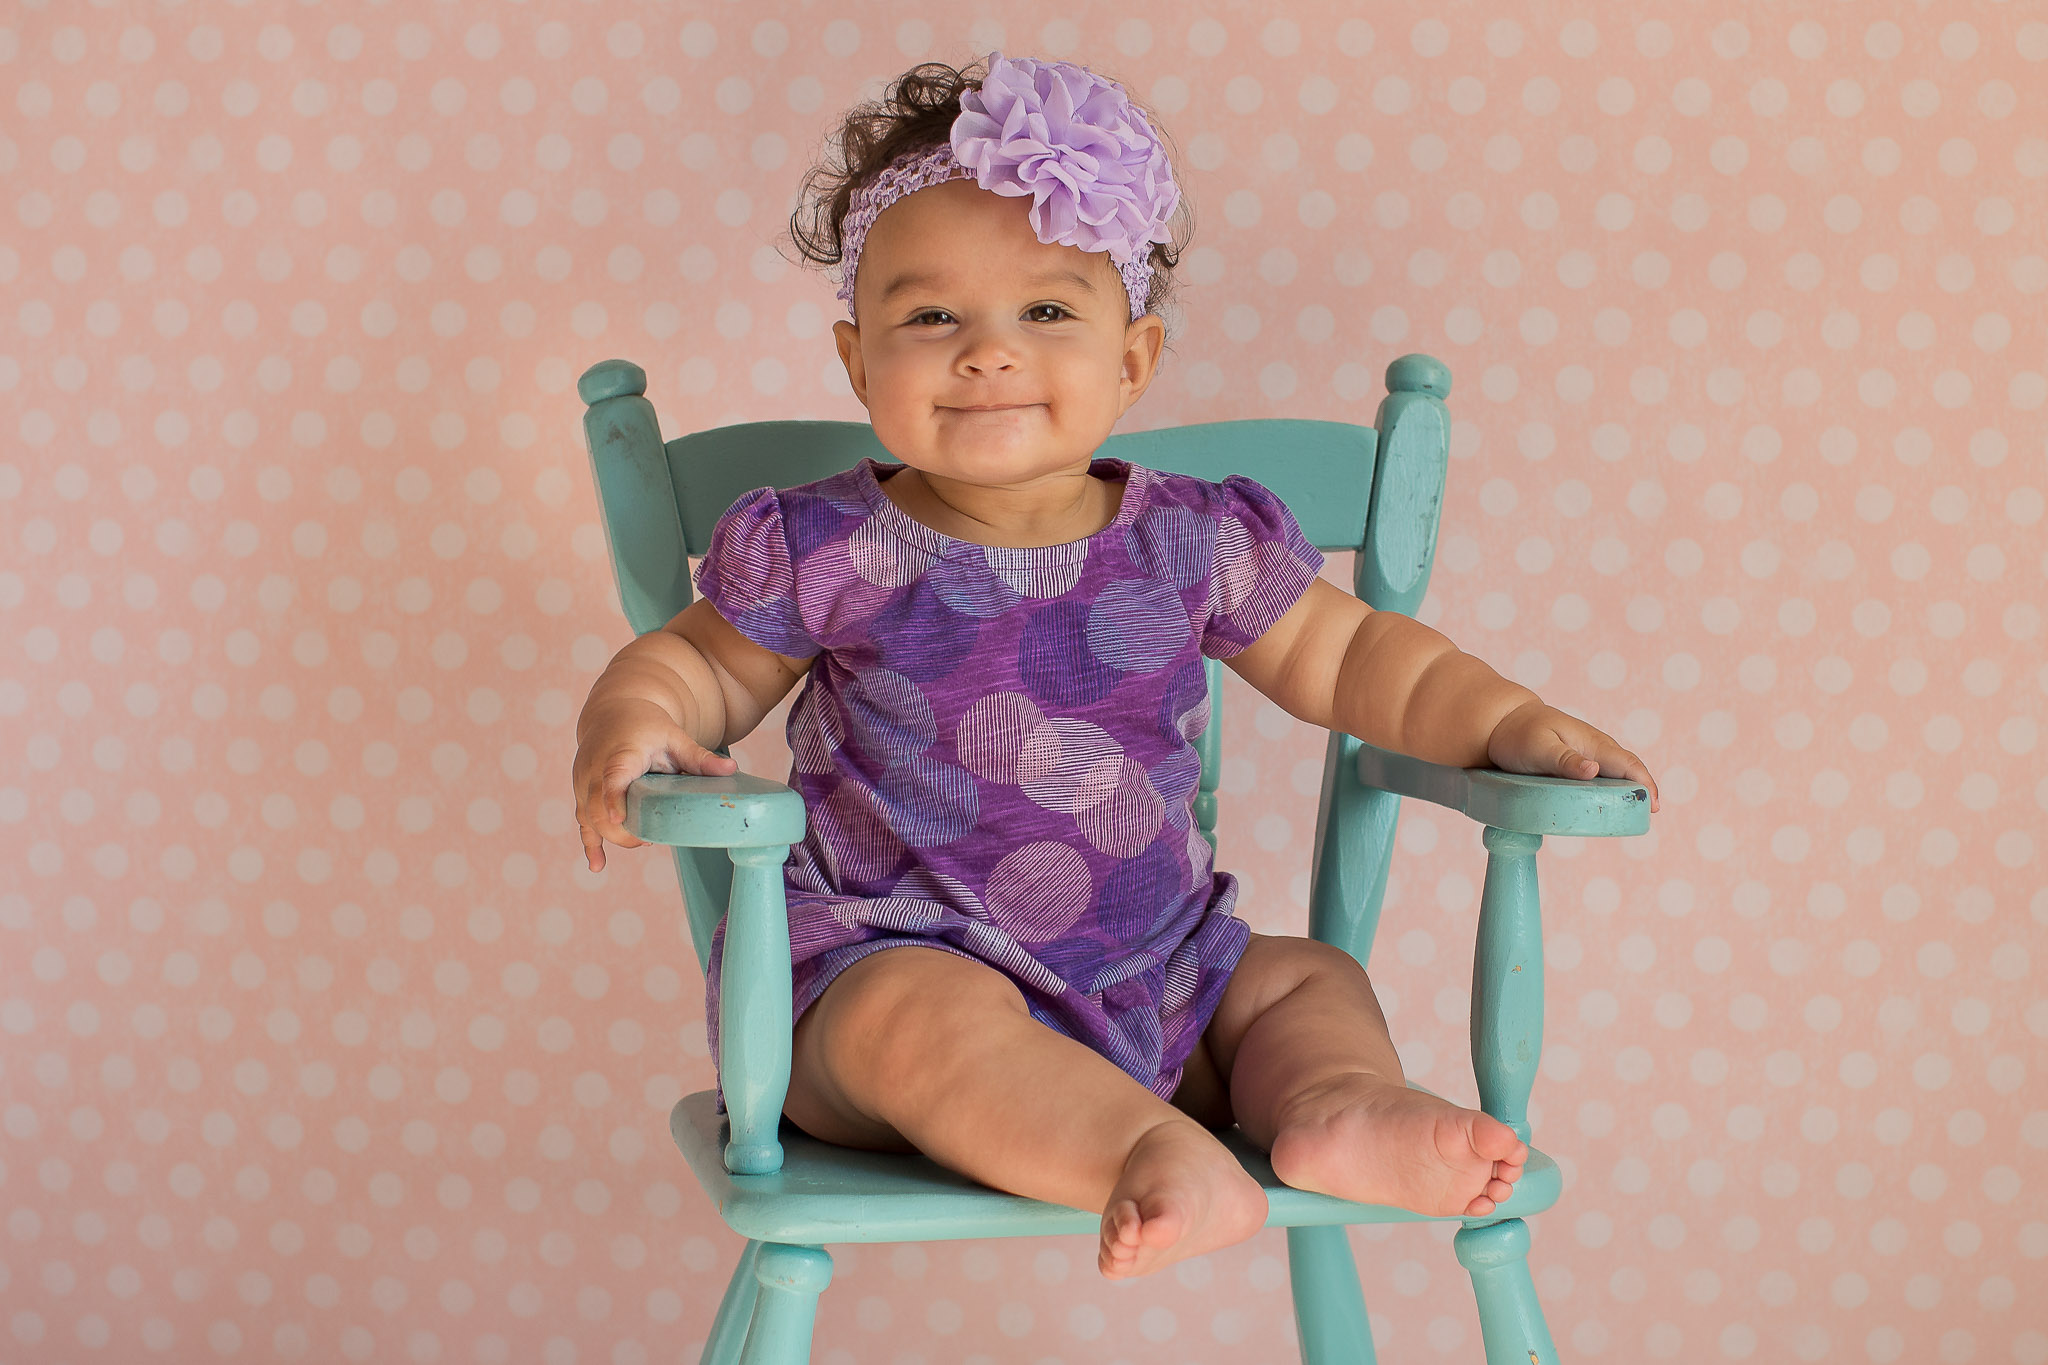 sitter-session-purple-teal-pink.jpg